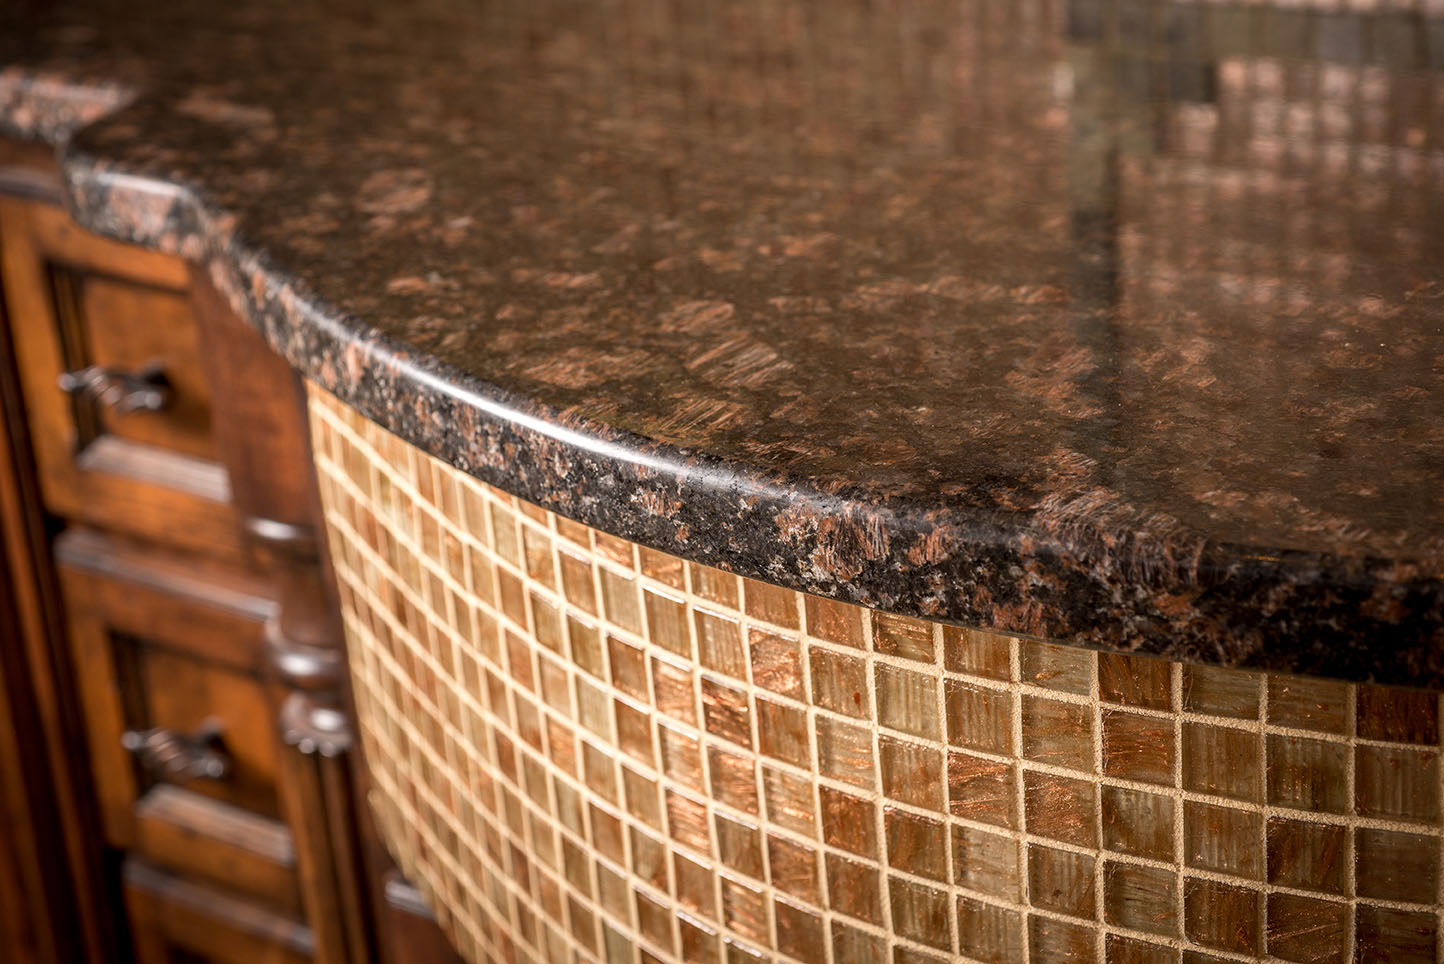 A classy granite kitchen counter with tile cabinet face.  This makes a great transition from the natural stone to your cabinets